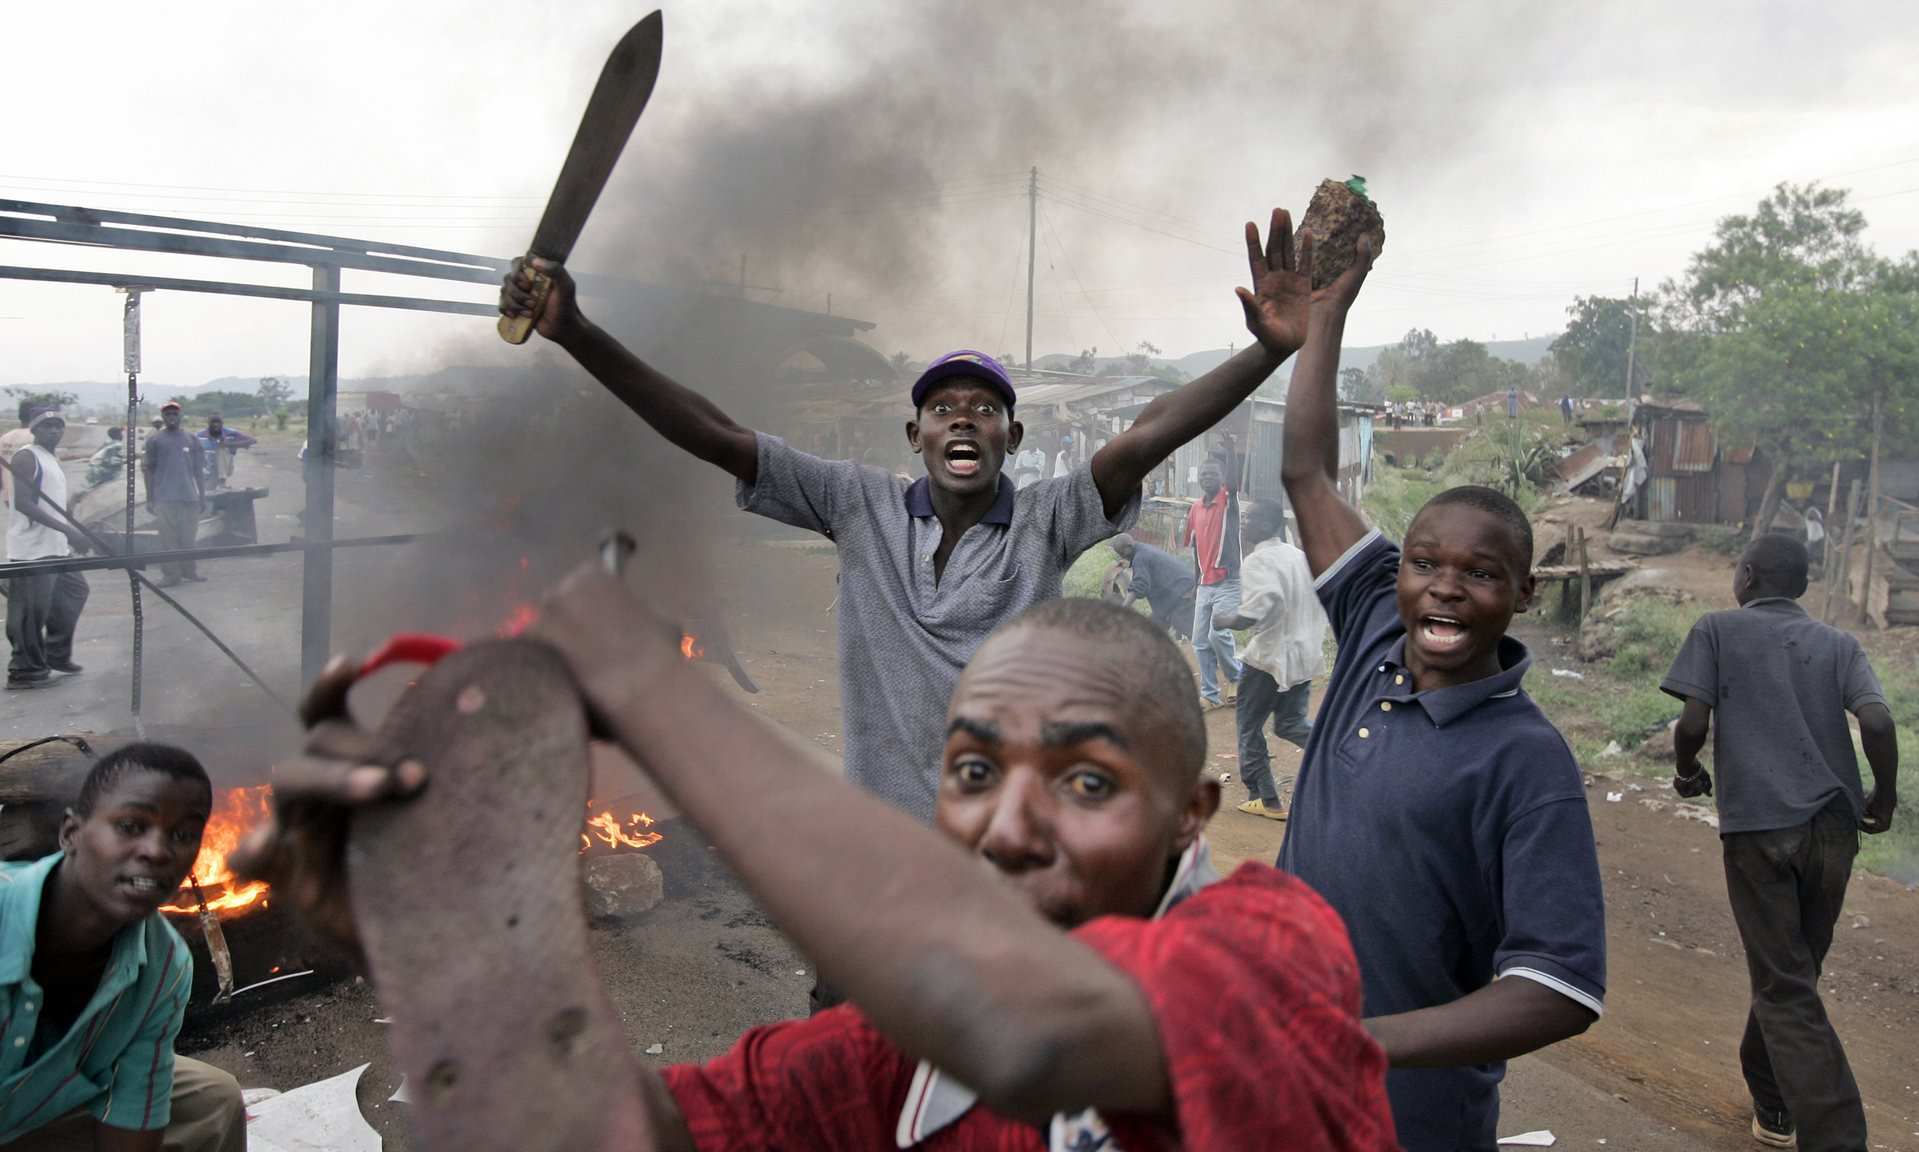 A crowdsourcing app launched in Kenya helped map post-election violence in the country in 2008. Photograph: Ben Curtis/AP